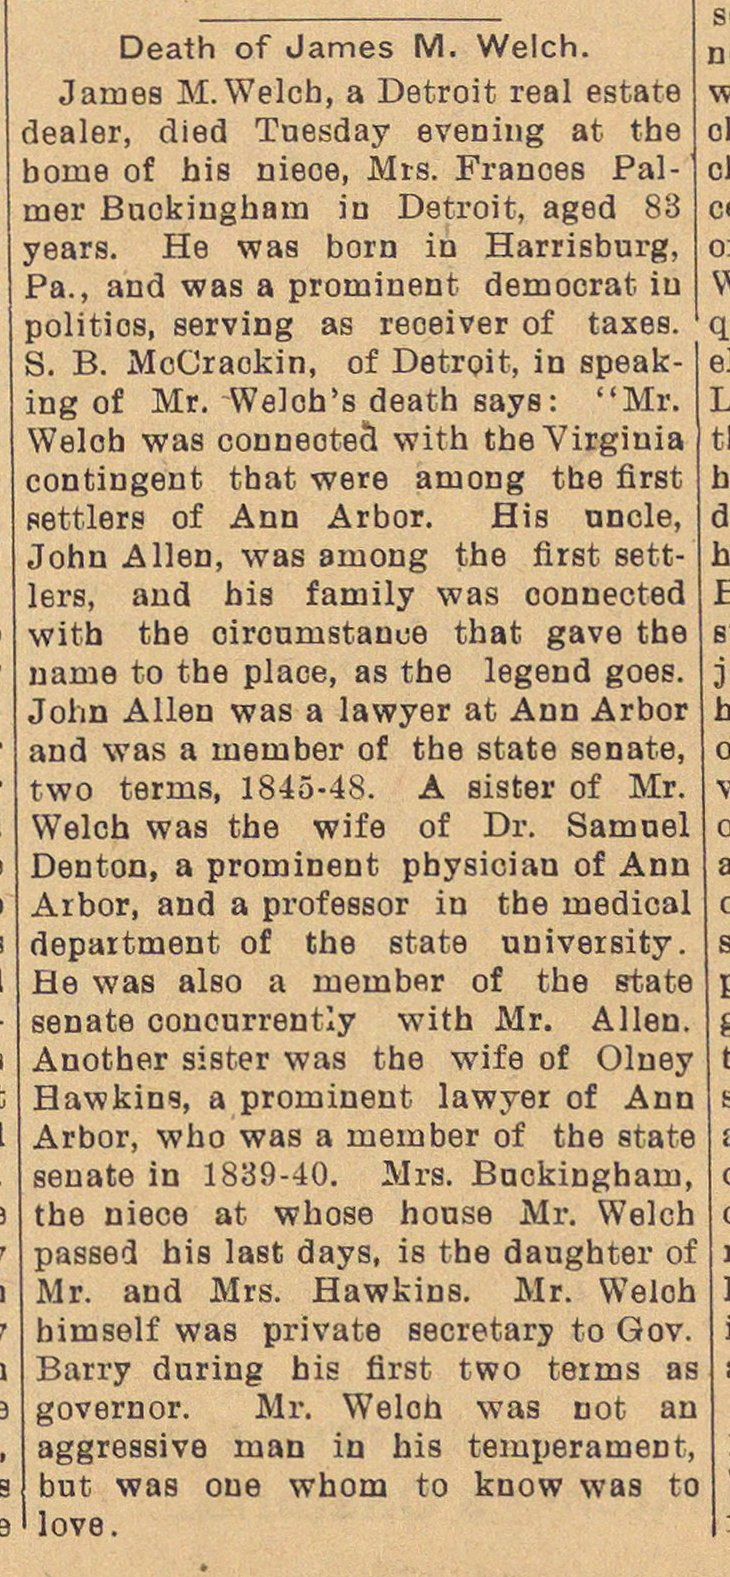 Death Of James M. Welch image